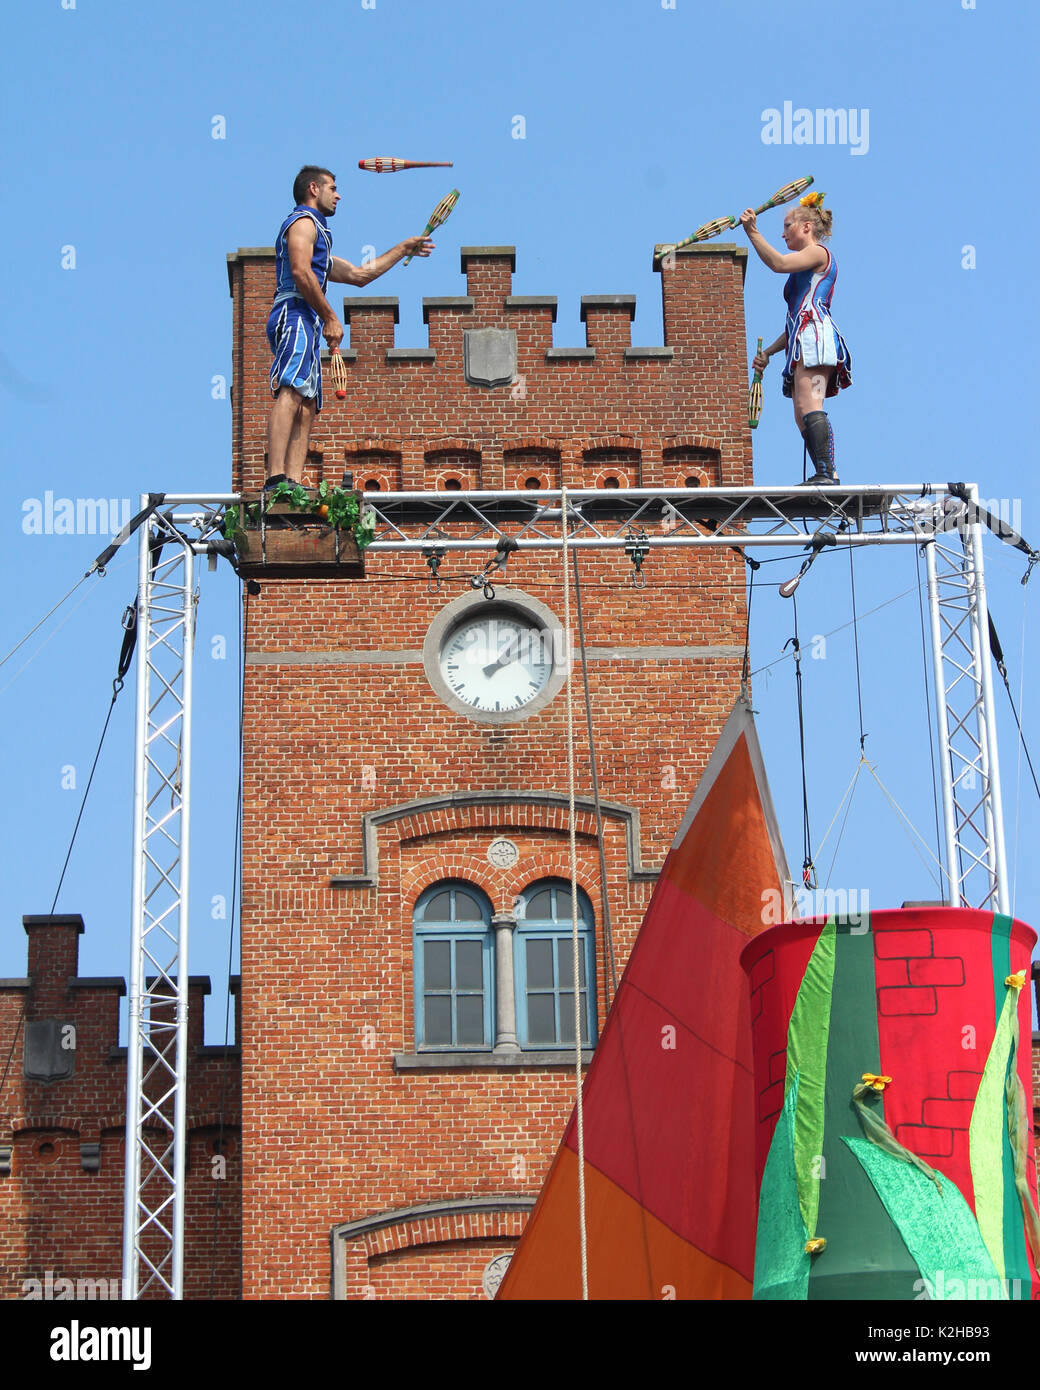 AALST, BELGIUM, AUGUST 27 2017: The juggling and acrobatic duo Circus unARTiq perform outside Aalst station, during the free open air festival Cirk. C - Stock Image